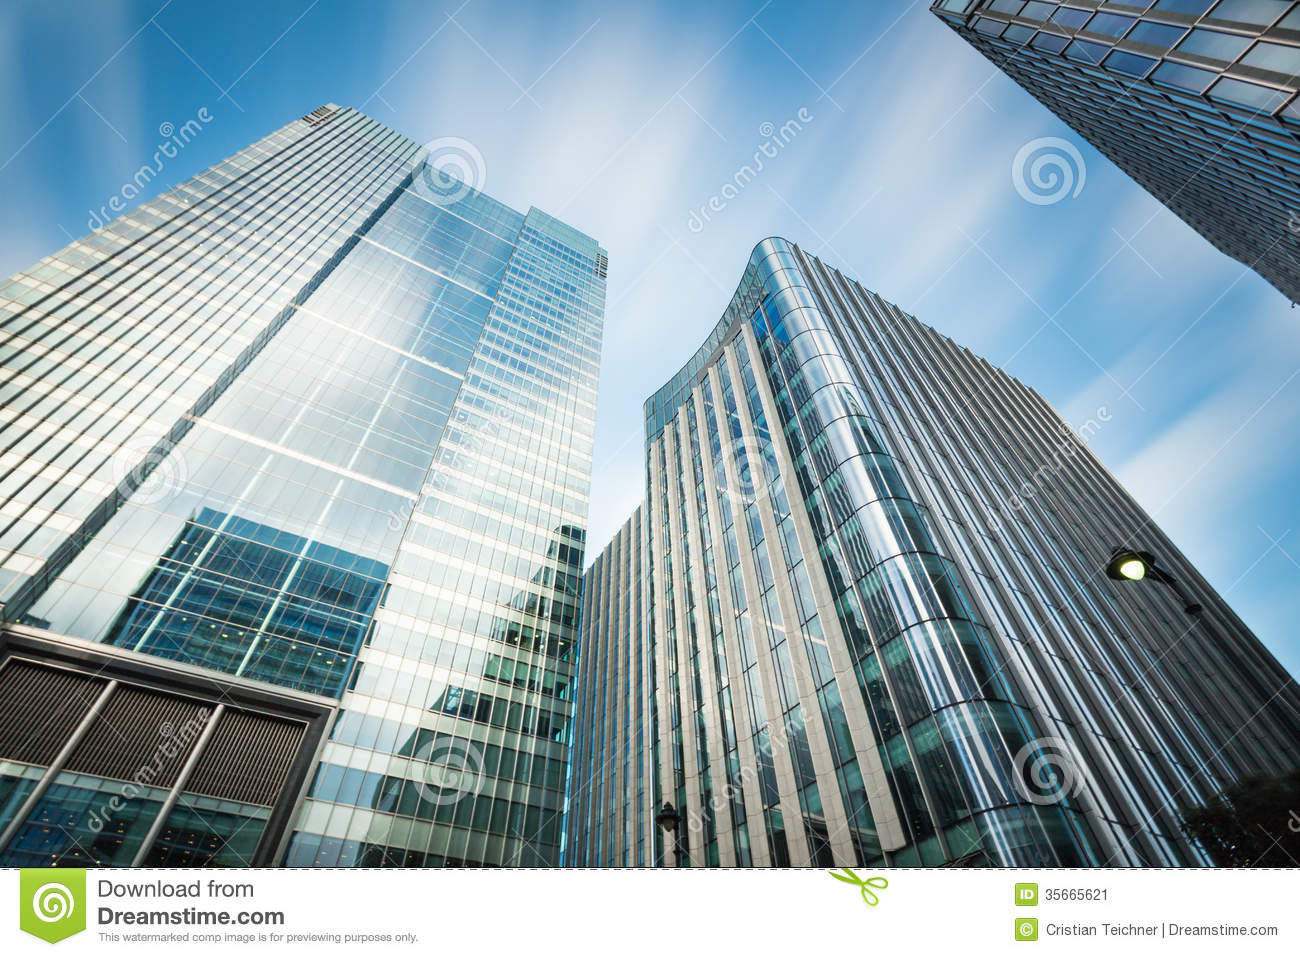 Business Building In Canary Wharf. Stock Image - Image: 35665621